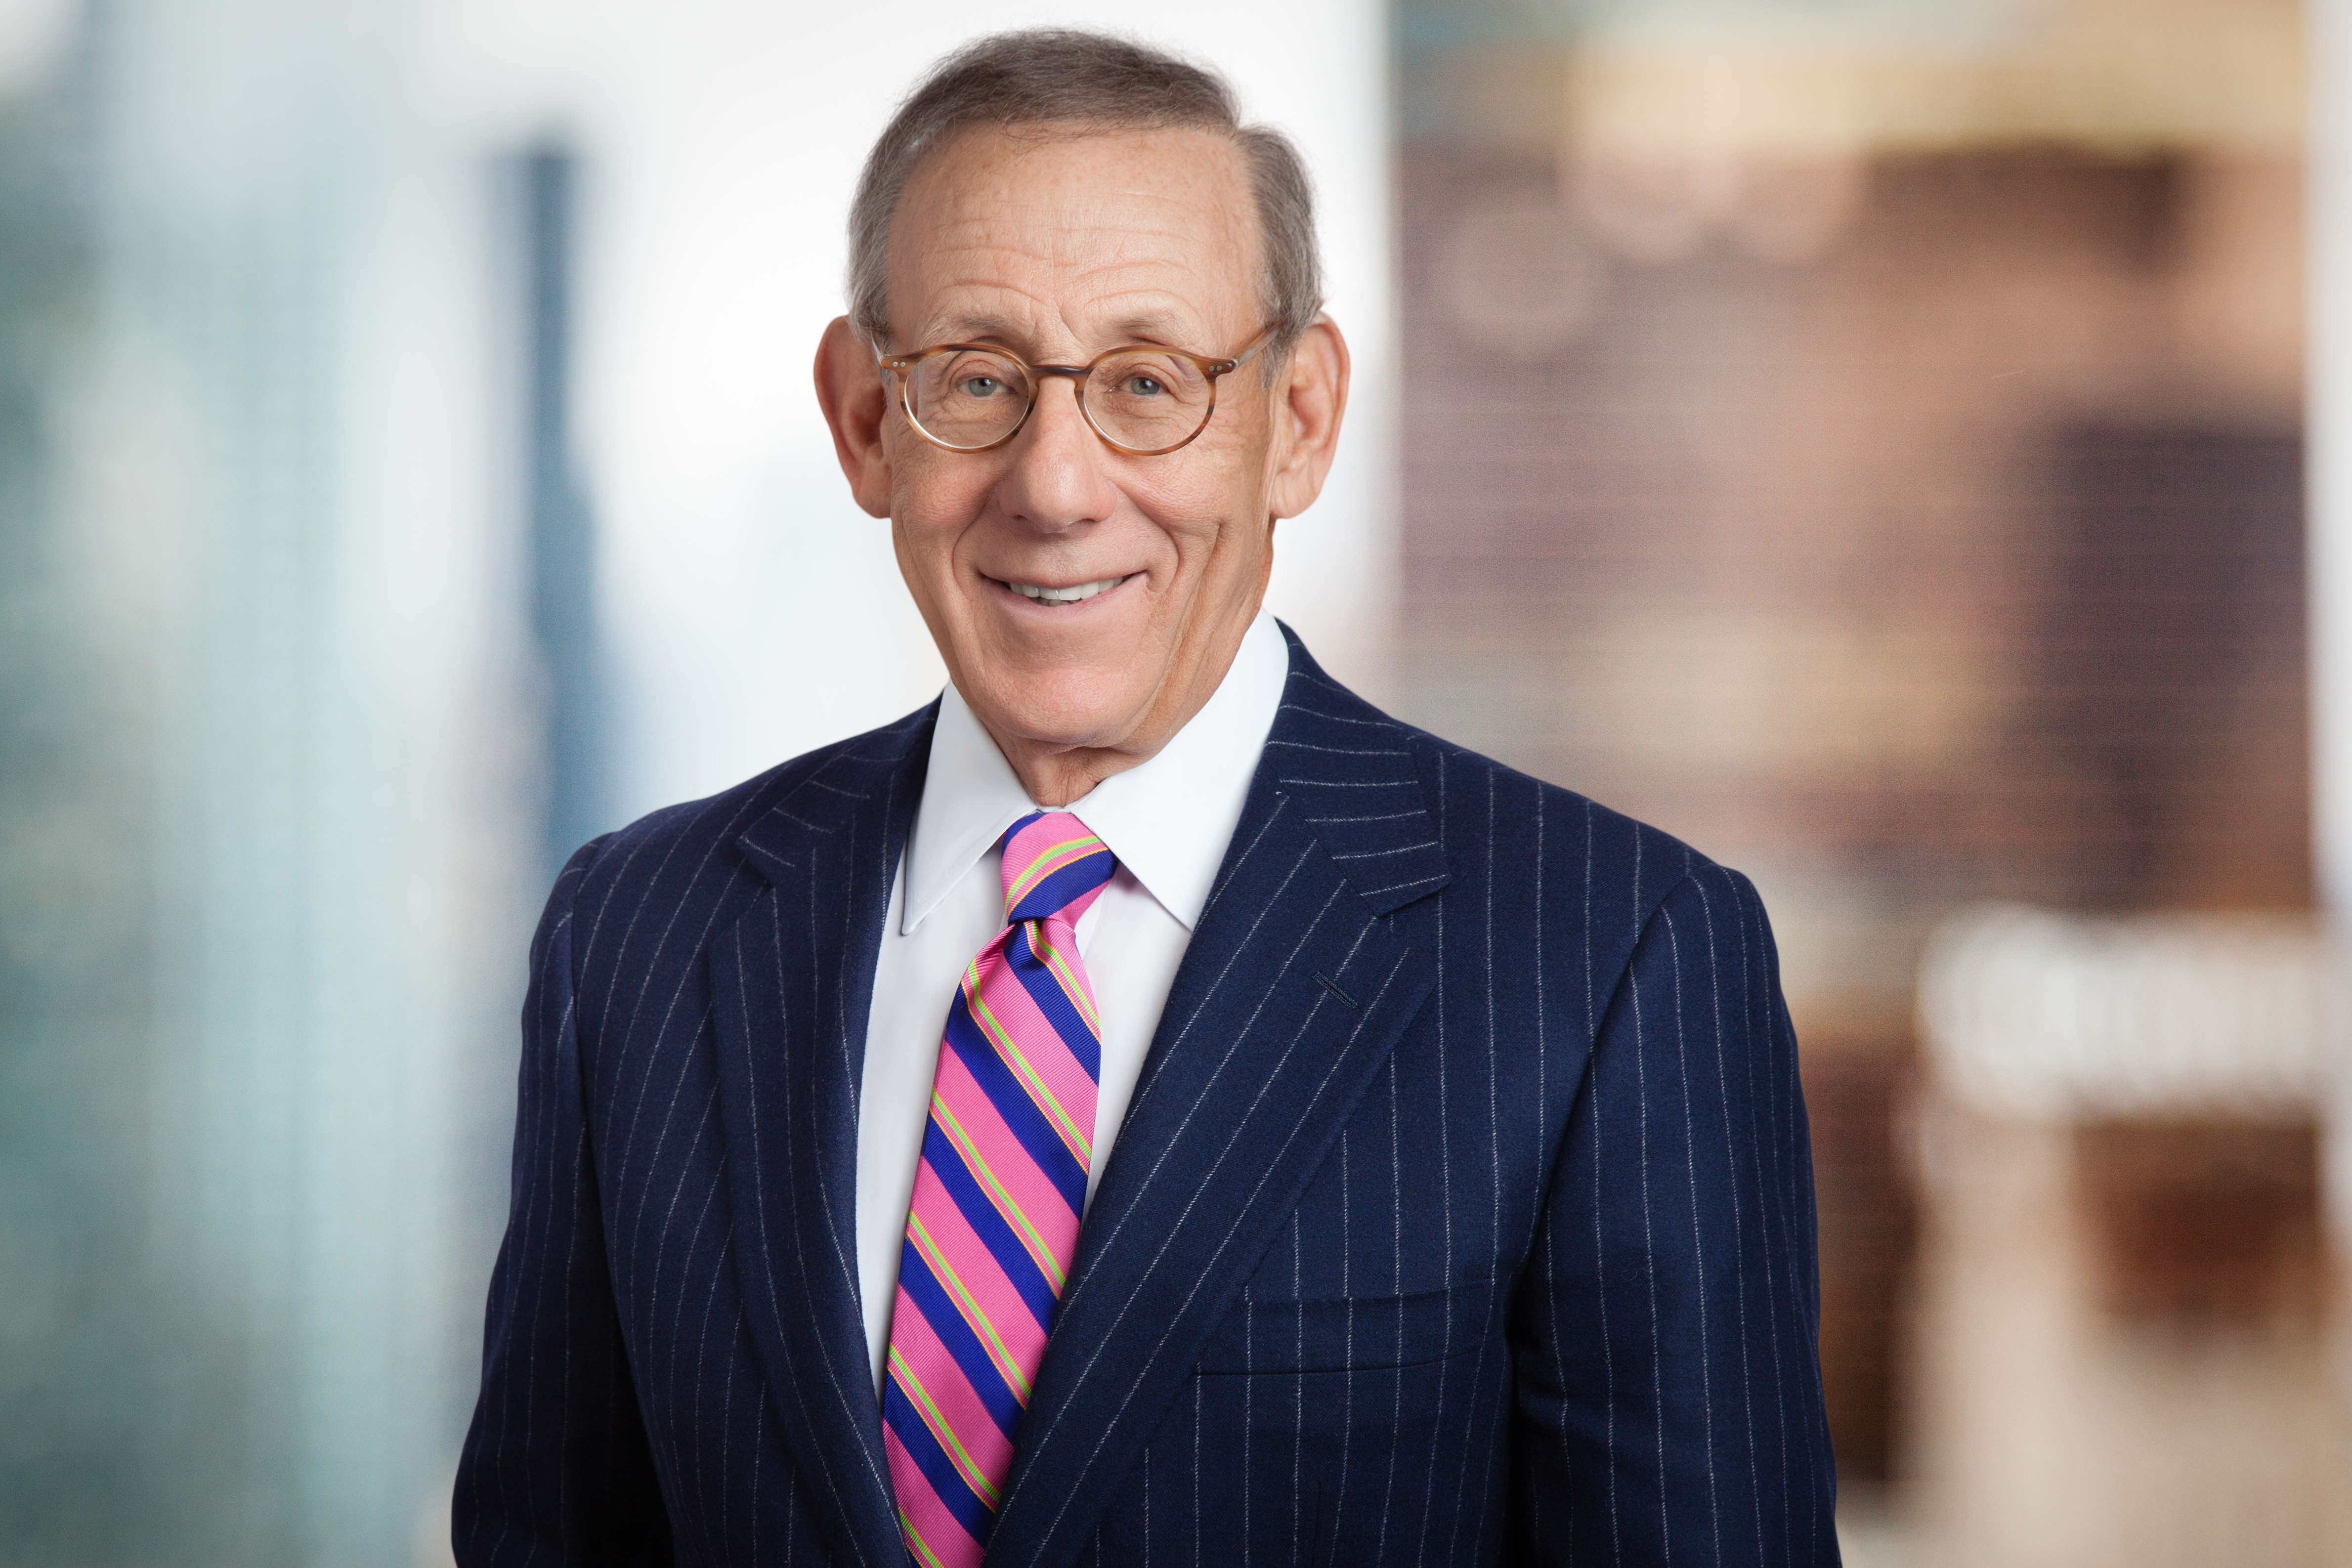 related-corporate-our-company-leadership-3x2-related_20160119_0128-edit_stephen_ross.jpg